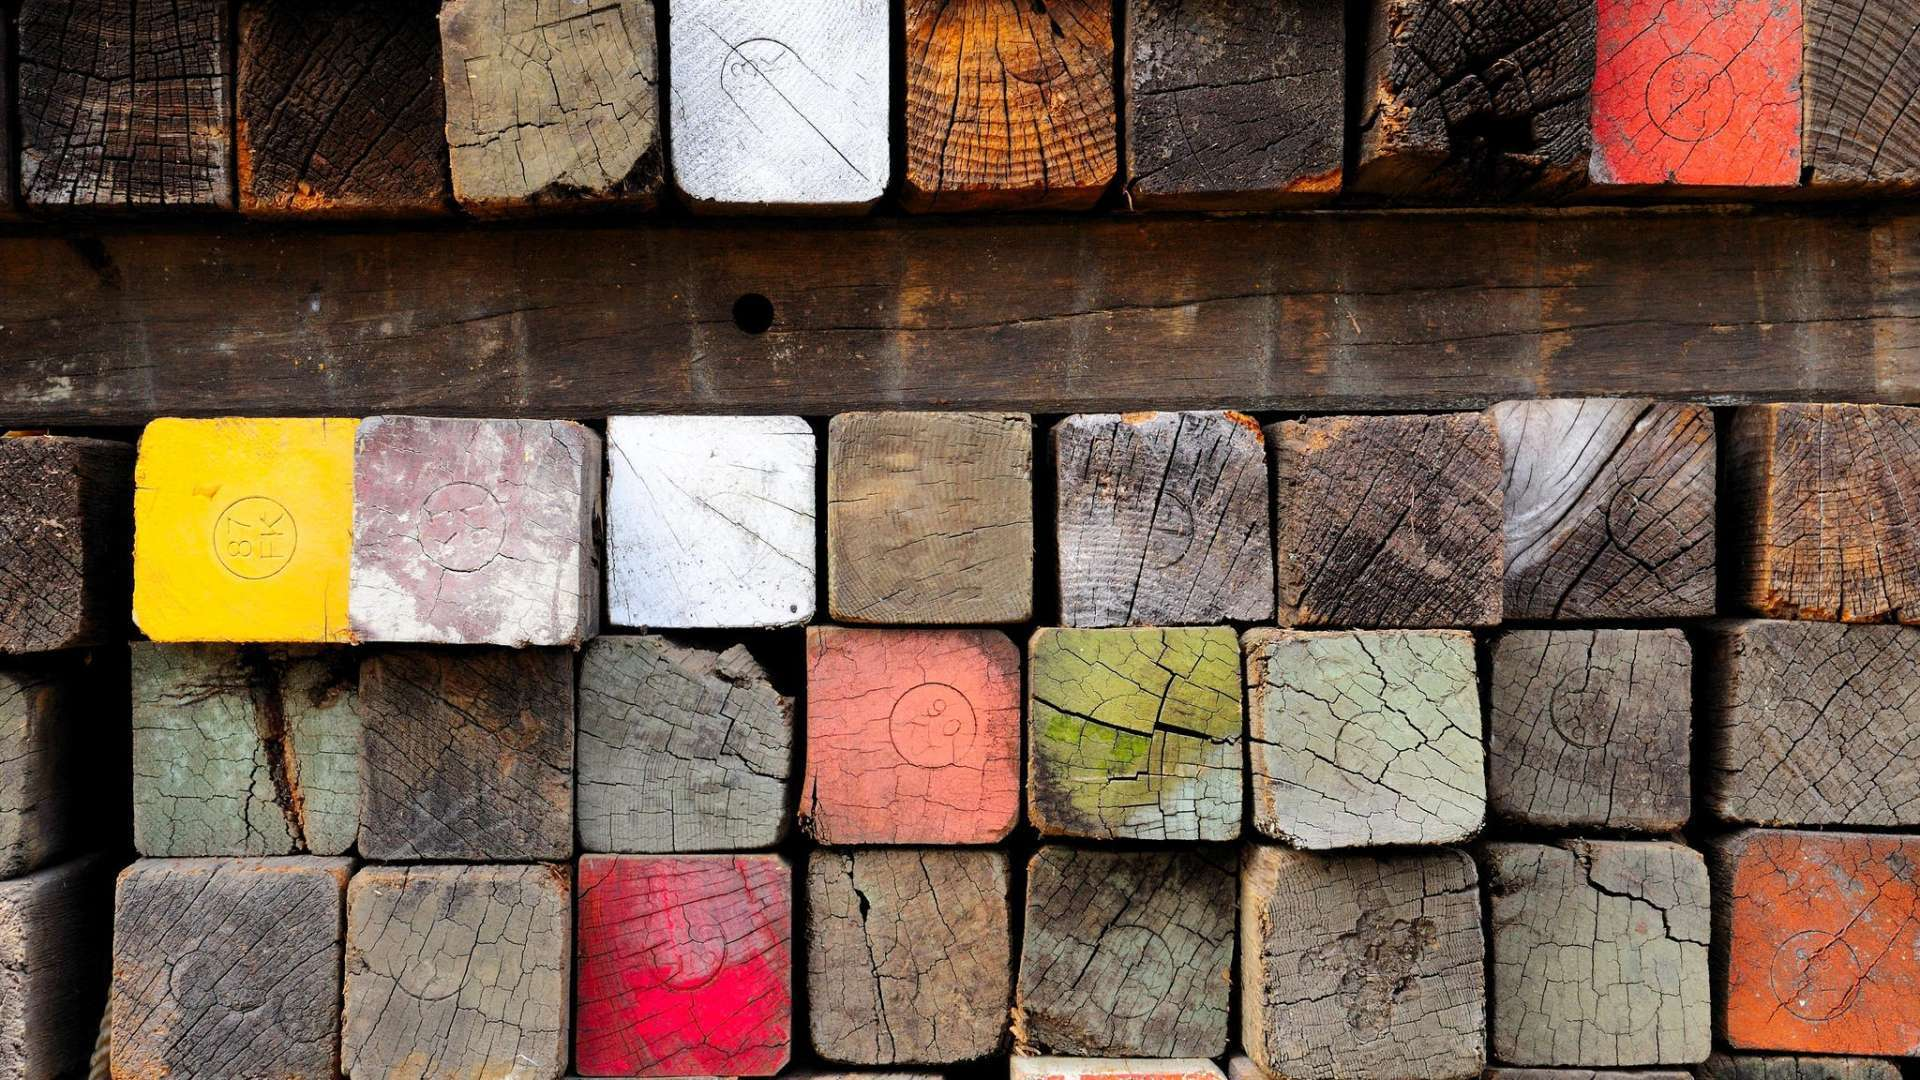 Wood-Lumber-Paint-Many-Hd-1080p-wallpaper-wp34012568